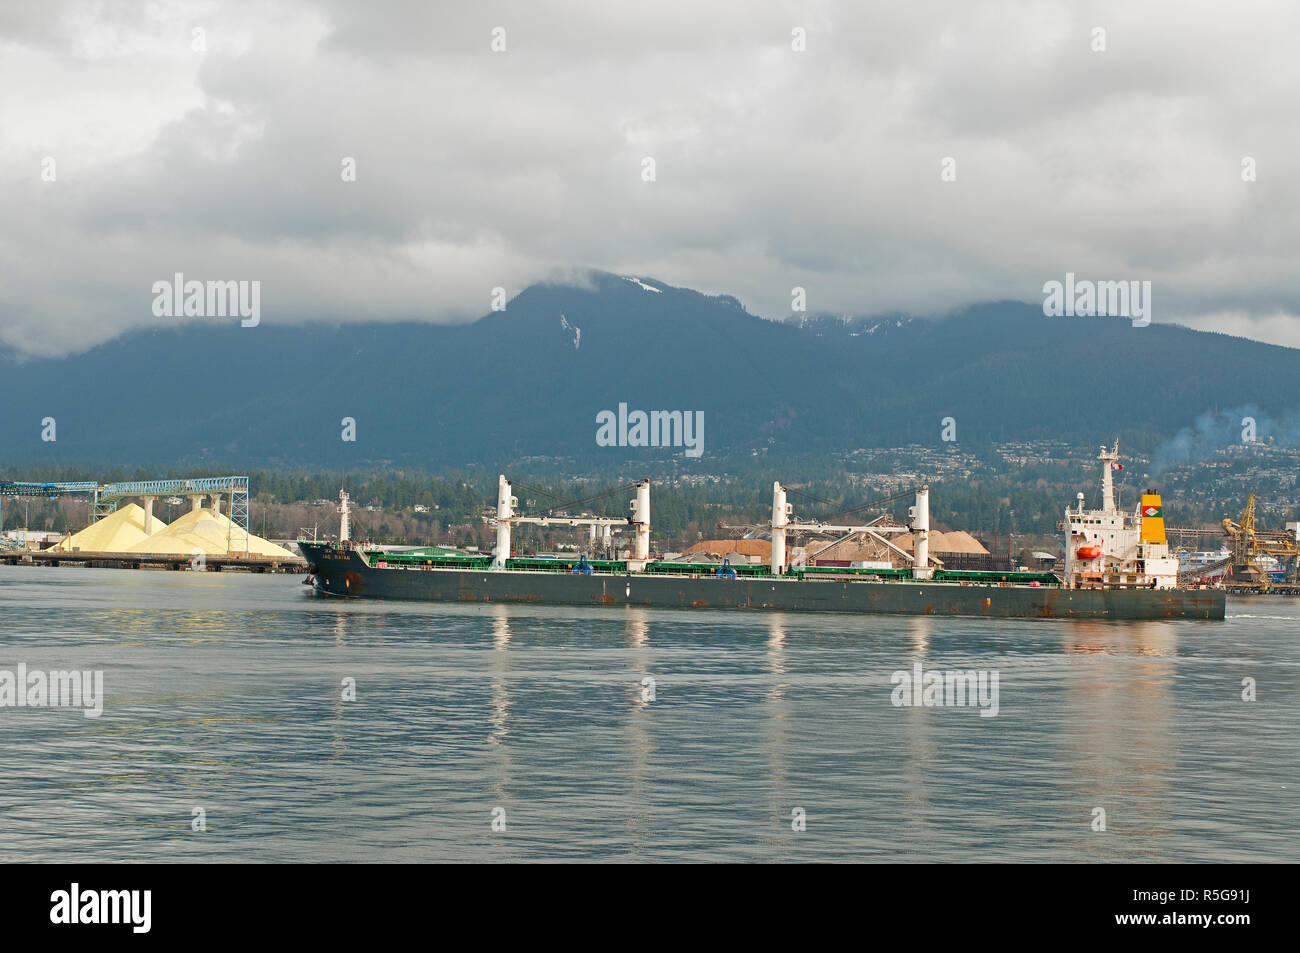 The Bulk Carrier vessel in the process of departing from Vancouver in British Columbia. - Stock Image